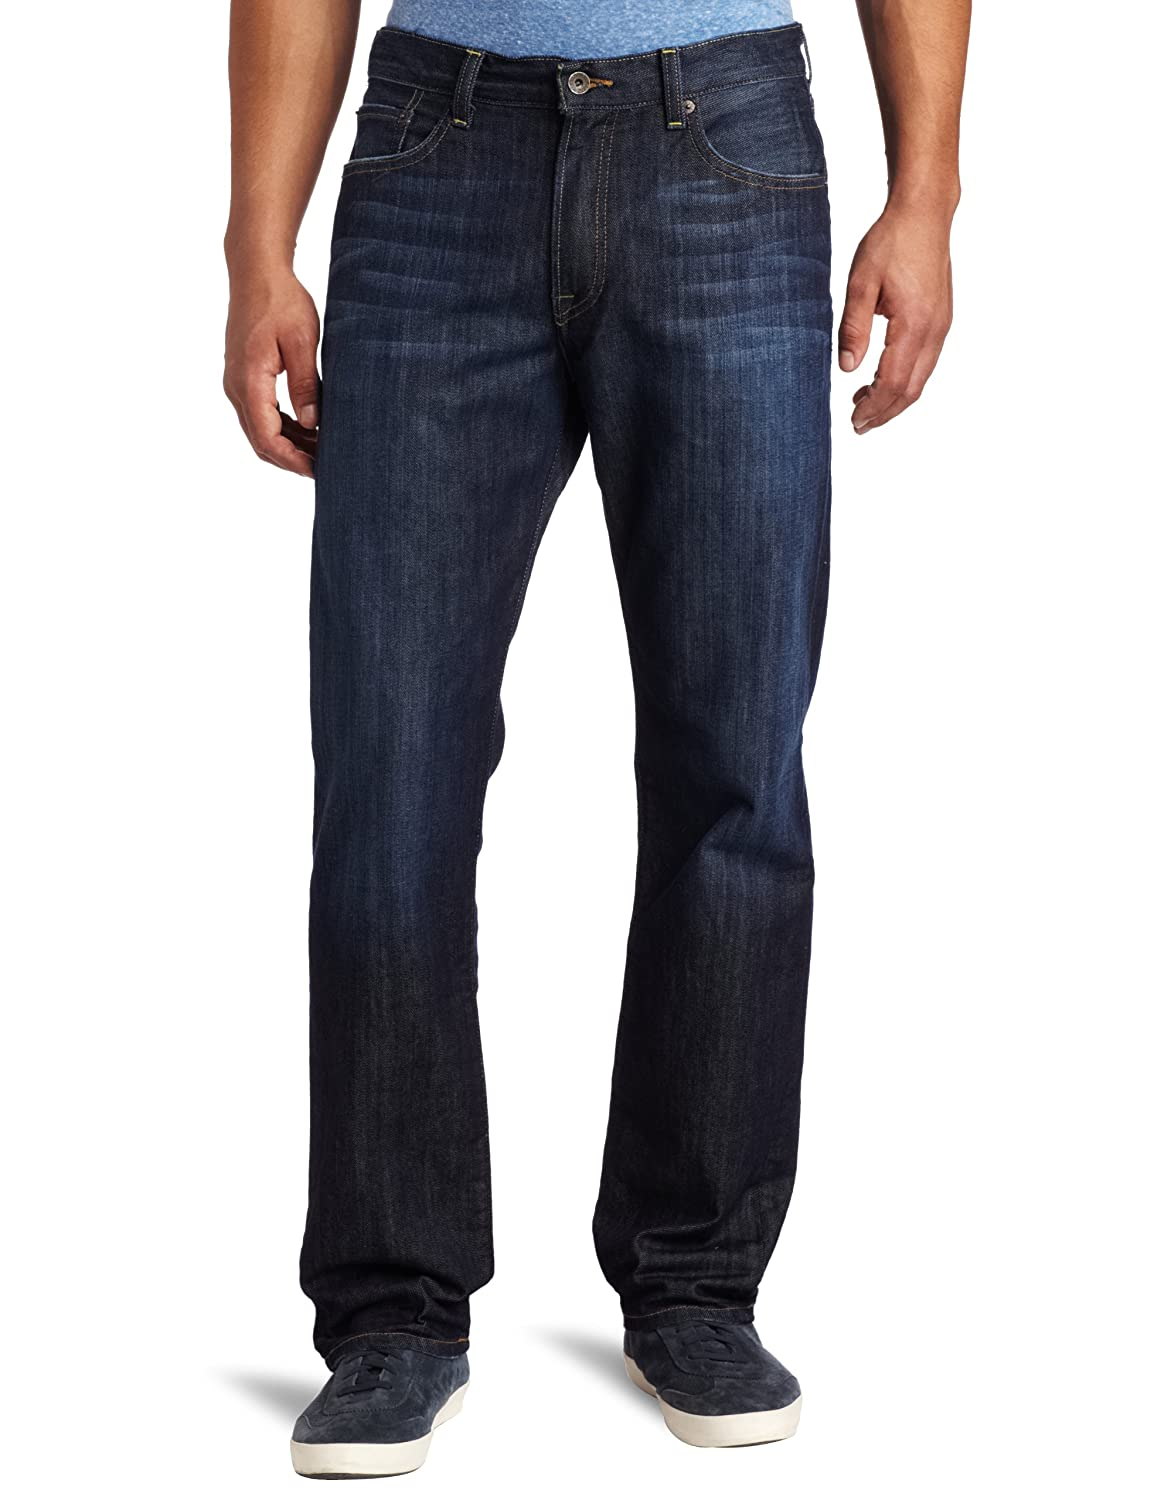 Classic Clothing Brands For Men Lucky Brand Men's 329 Classic